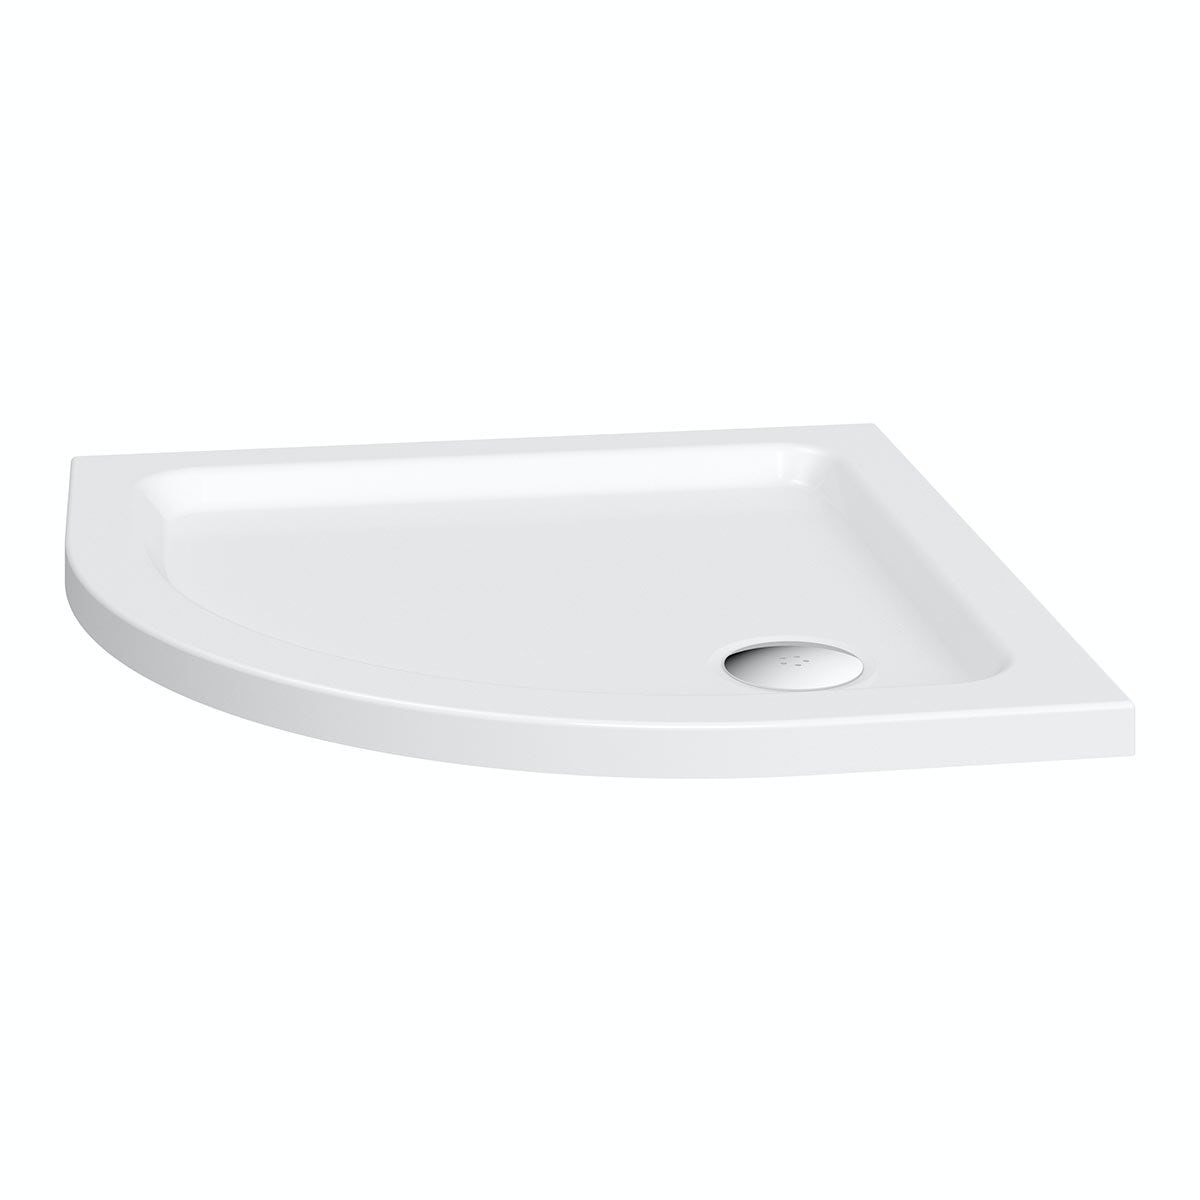 Simplite Quadrant Shower Tray